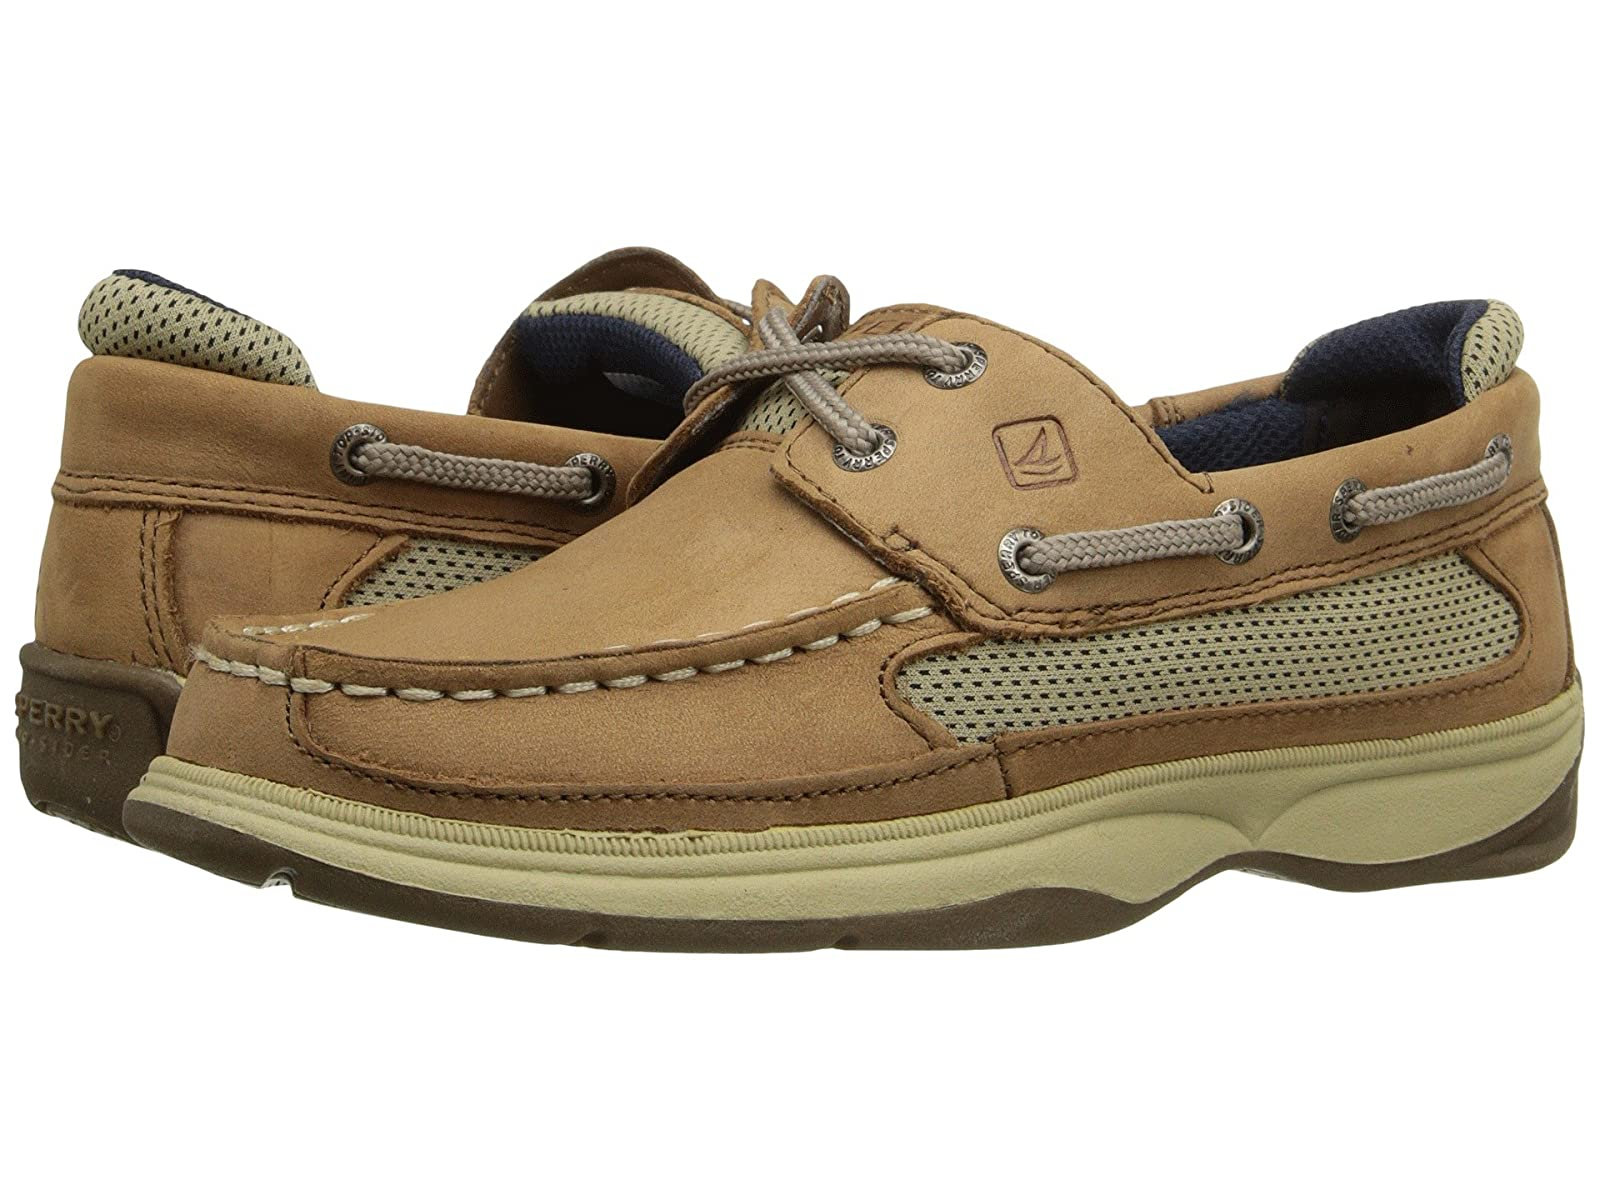 Sperry Kids Lanyard (Little Kid/Big Kid)Cheap and distinctive eye-catching shoes